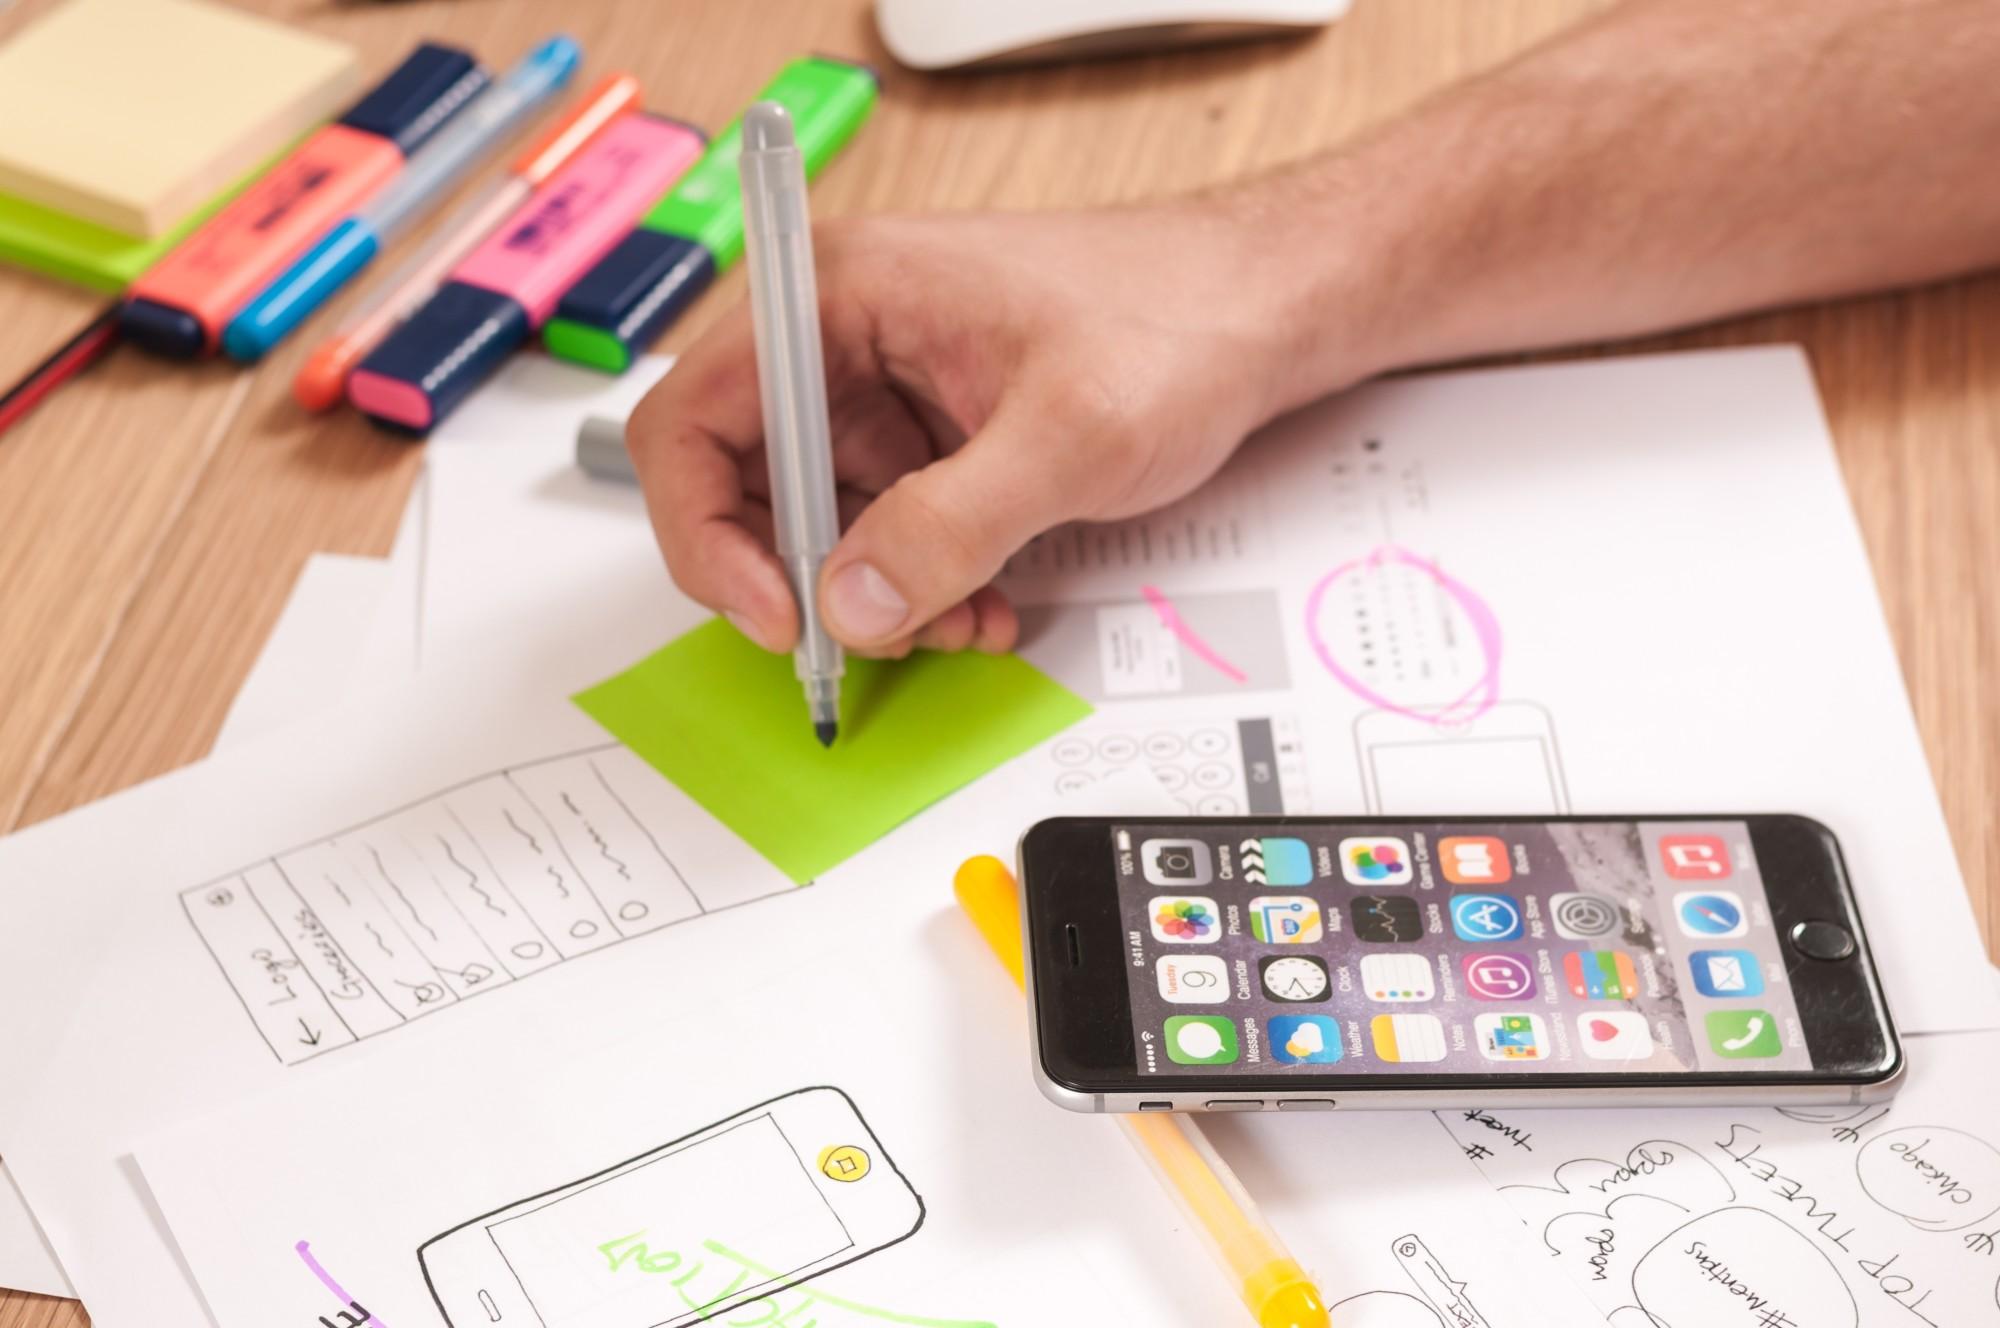 How to Develop an App in 9 (Simplified) Steps